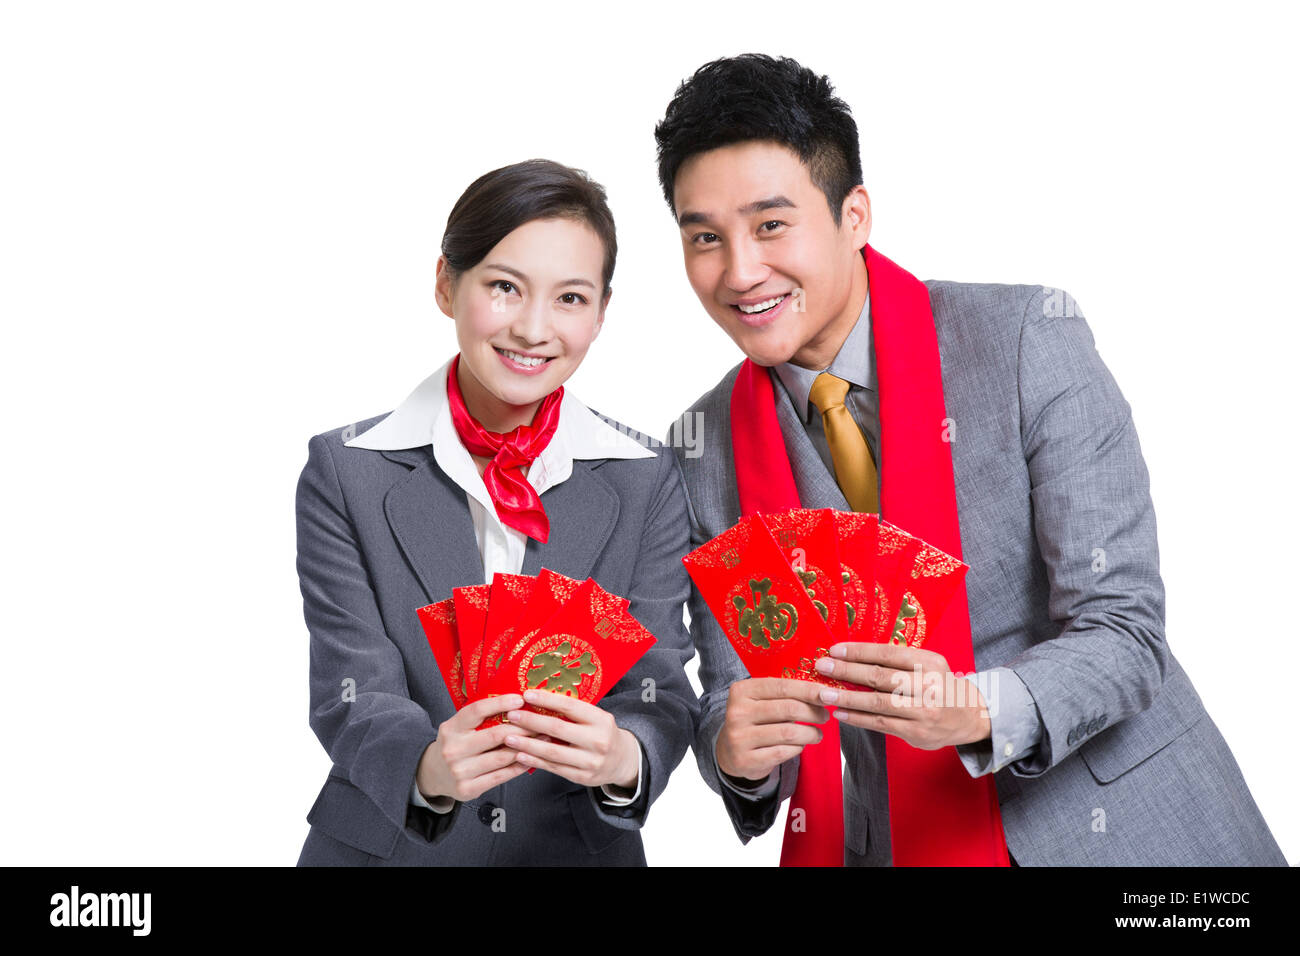 Happy business colleagues gifting traditional red envelopes - Stock Image